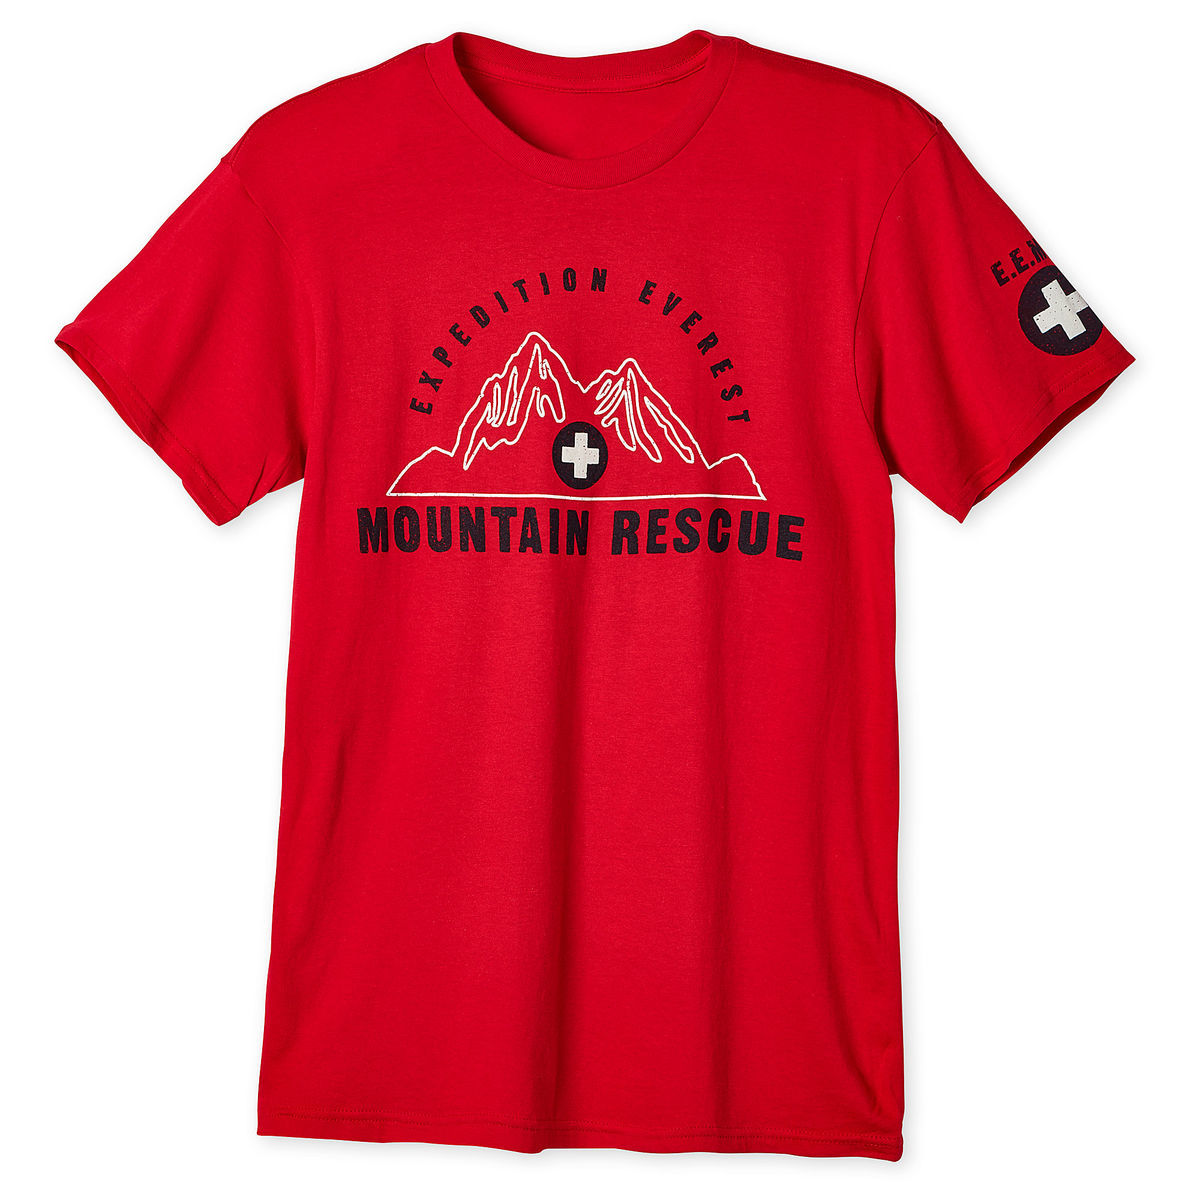 Disney T-Shirt for Adults - Expedition Everest - Mountain Rescue